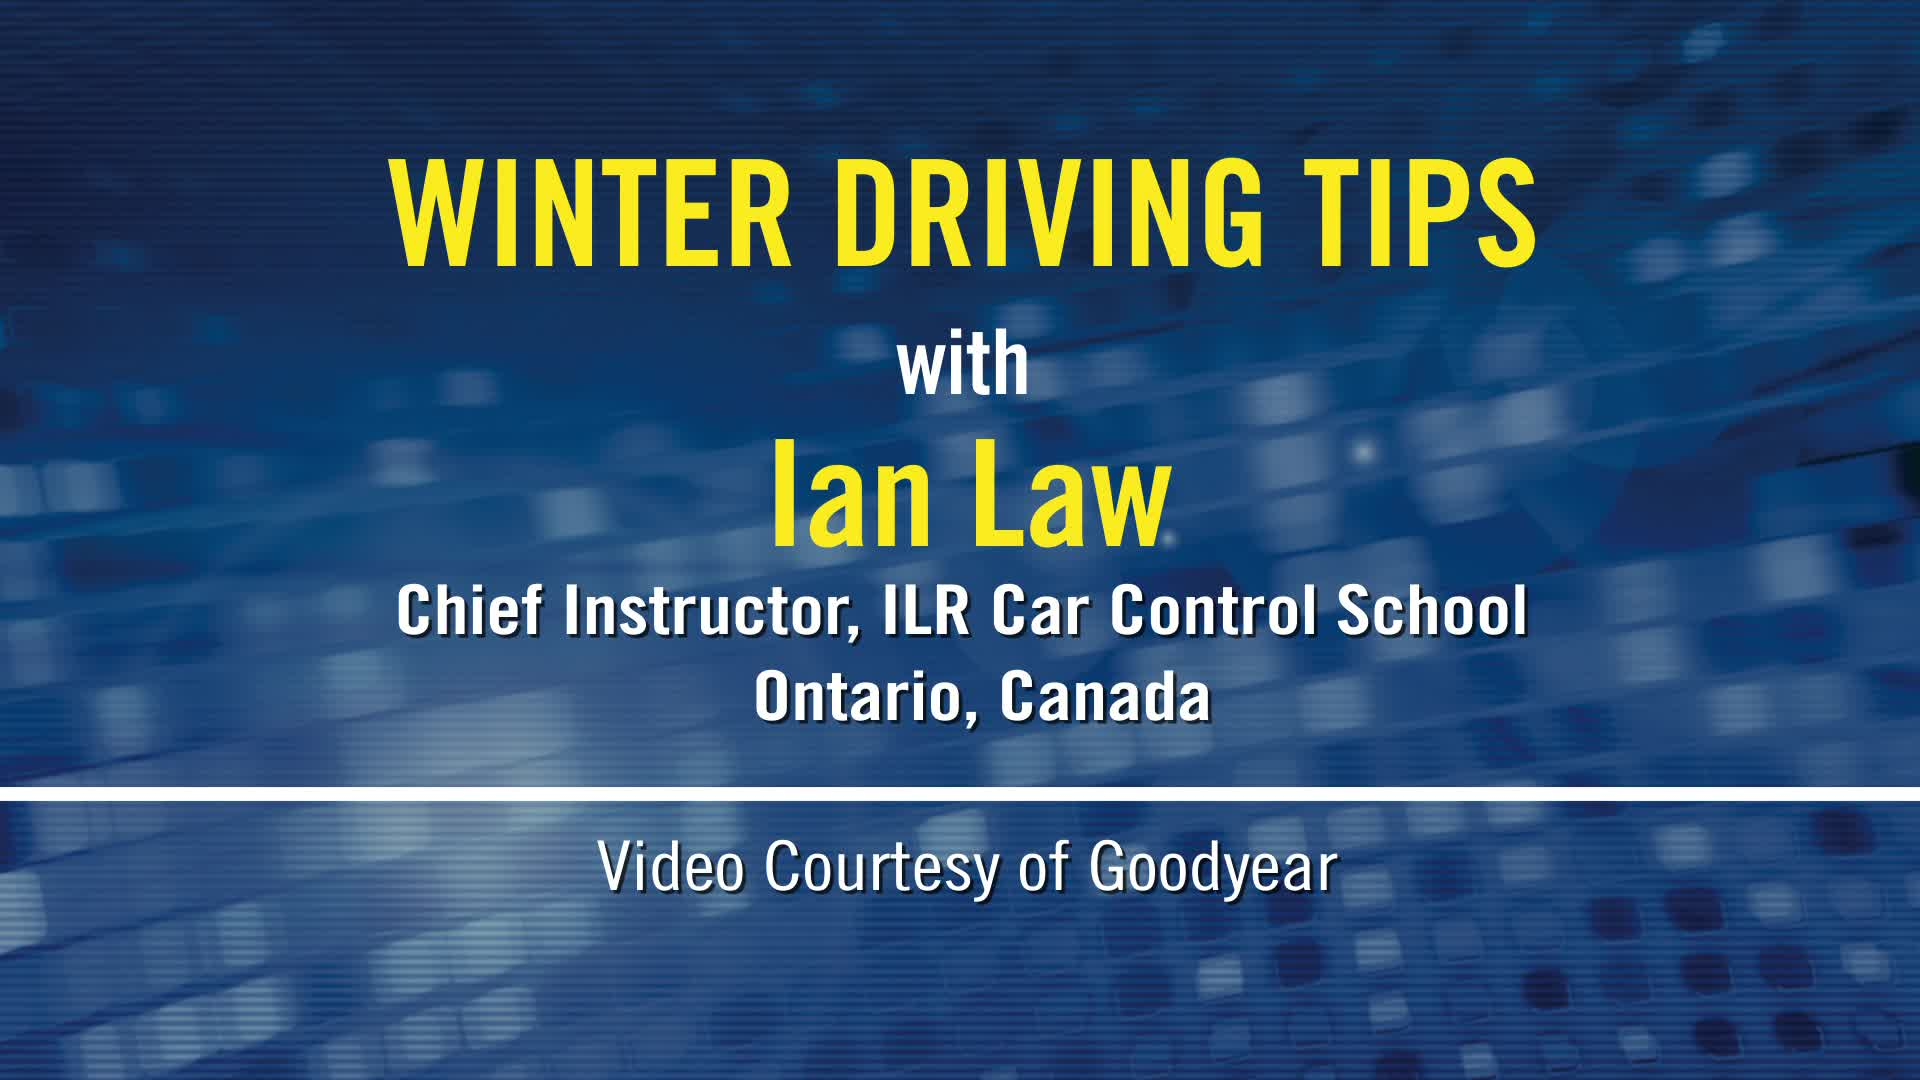 Winter driving school instructor Ian Law provides tips for handling snowy and icy road conditions.